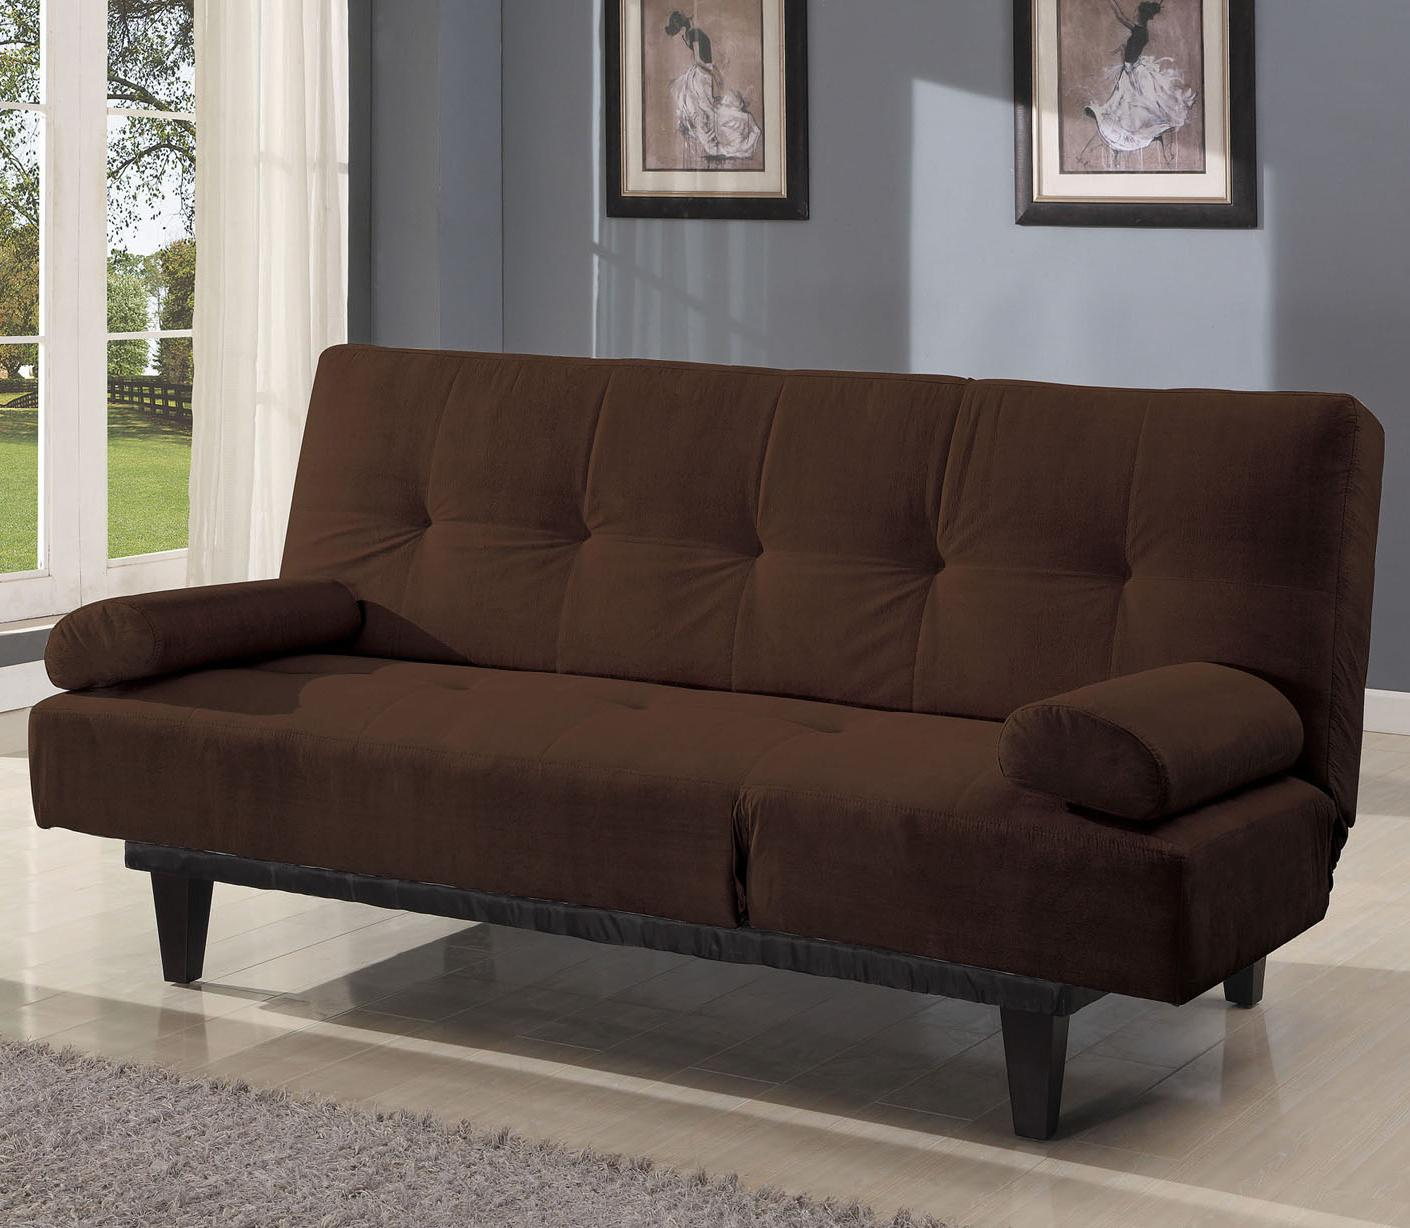 Acme Furniture Cybil  Brown Adjustable Sofa With 2 Pillows - Item Number: 05855W-BR